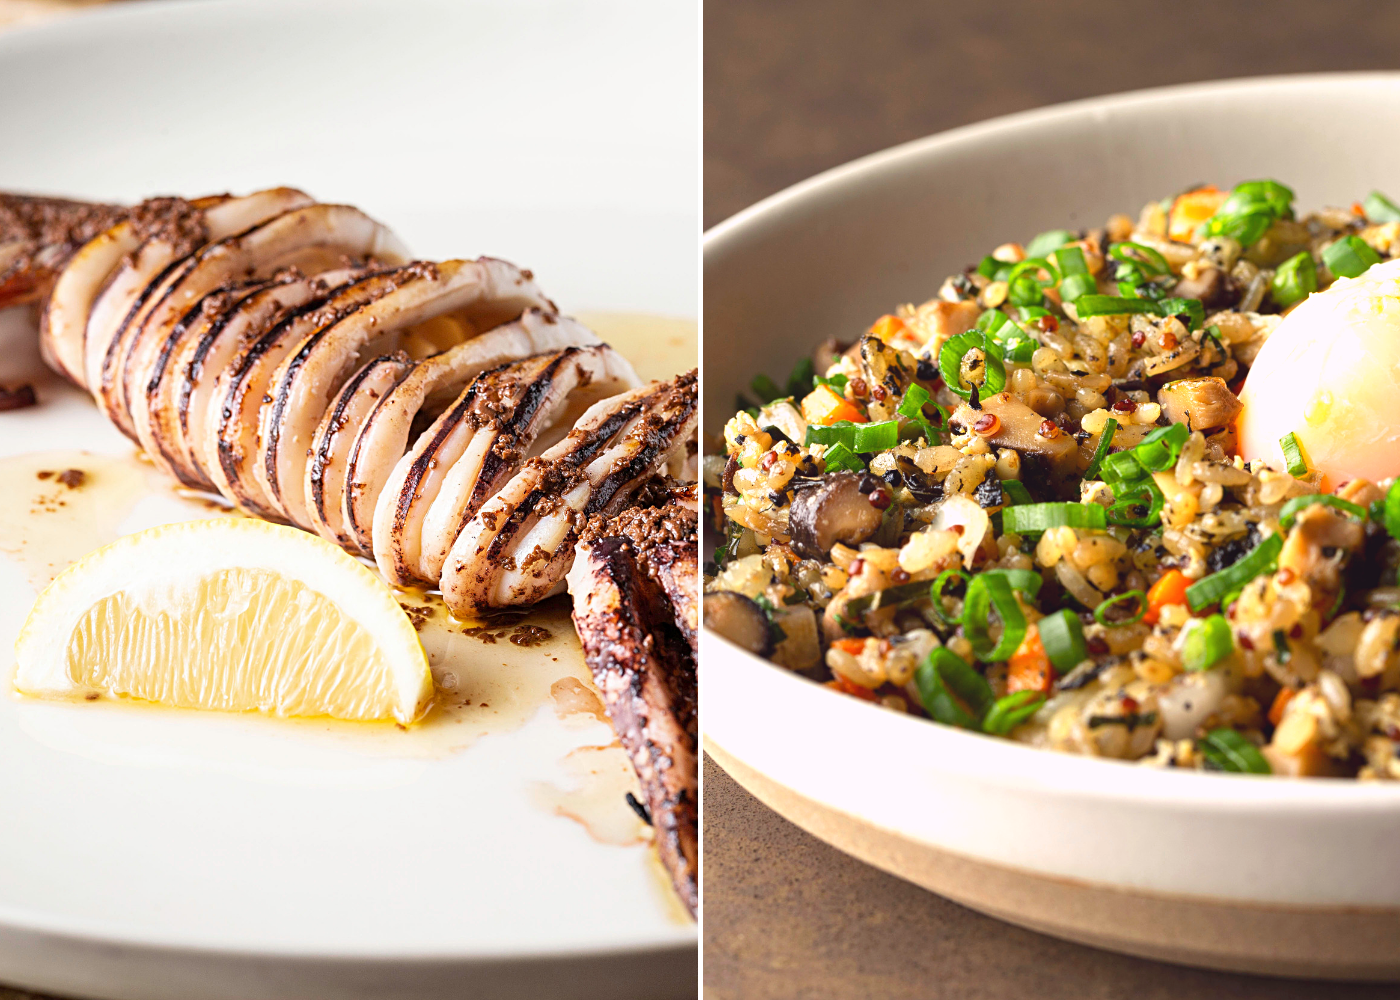 Left: Japanese Flying Squid, right: Black Truffle Fried Rice. Photography: Adrift by David Myers